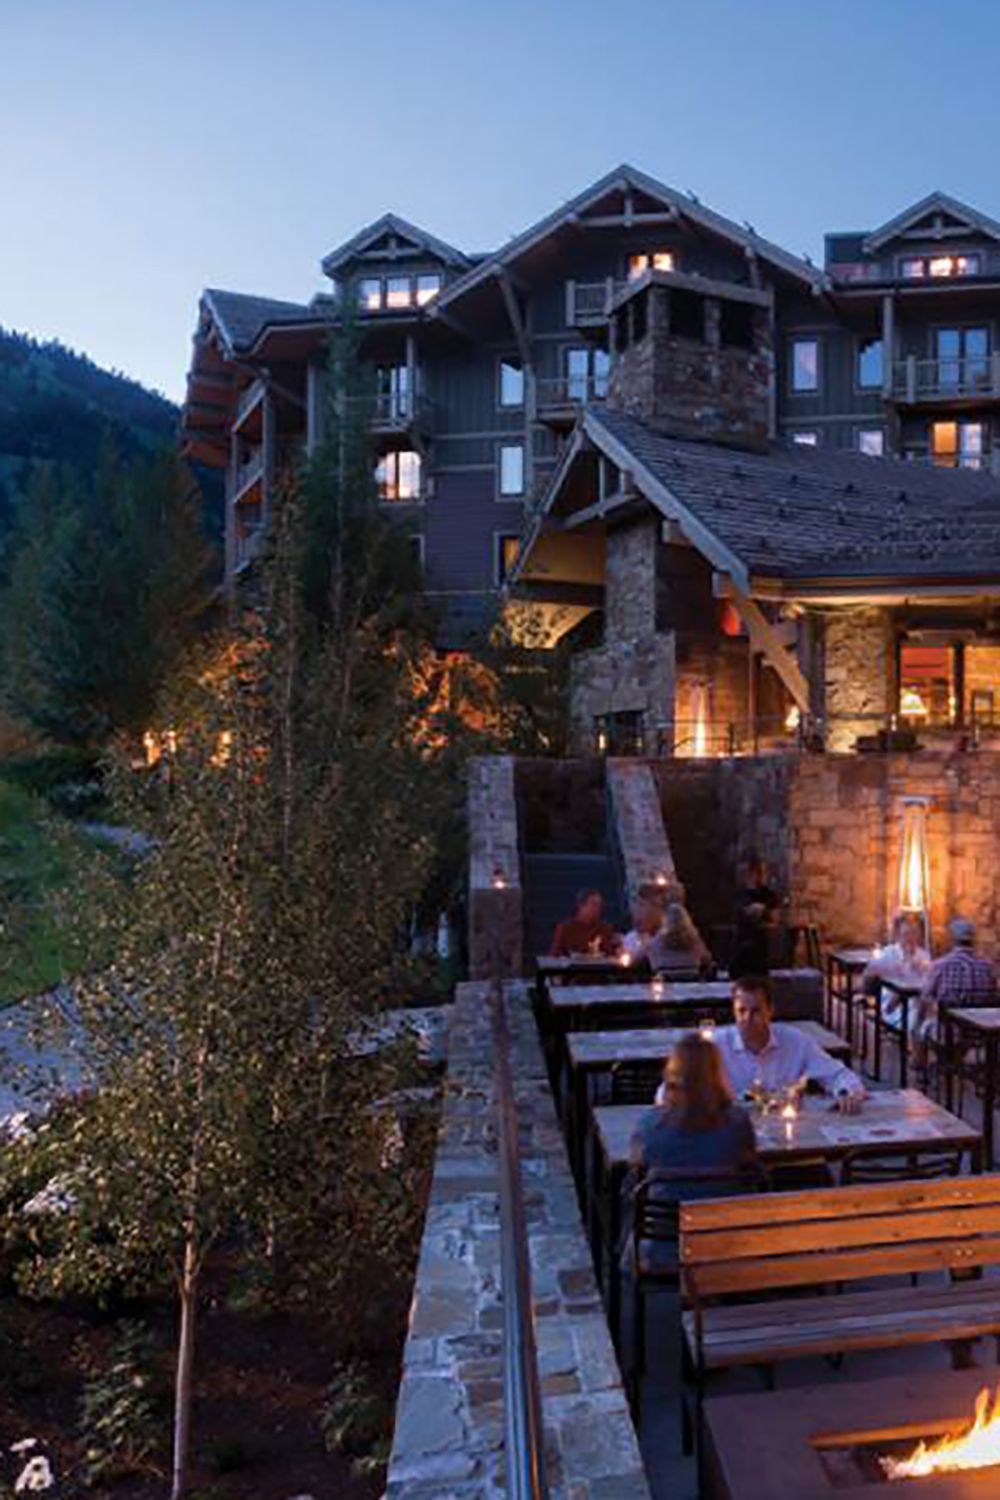 "<p>Sometimes the best way to unwind from a day full of strenuous ski exercise is...with more exercise. <a href=""http://www.fourseasons.com/jacksonhole/"">The Four Seasons Jackson Hole</a> offers guests a complimentary après ski yoga class to loosen up those sore muscles—you will not believe the kind of relief yoga stretching provides after skiing, especially when you're on a multi day trip. </p><p>After the class, you can continue unwinding by lounging at their outdoor pool and hot tubs, located slope side, where snow bunnies will put your robes on for you and store them in a heated box while you soak. If you end up there during peak apré<span class=""redactor-invisible-space""></span>s time, AKA 3 to 6 p.m., you'll also be able to indulge in poolside s'mores.</p>"